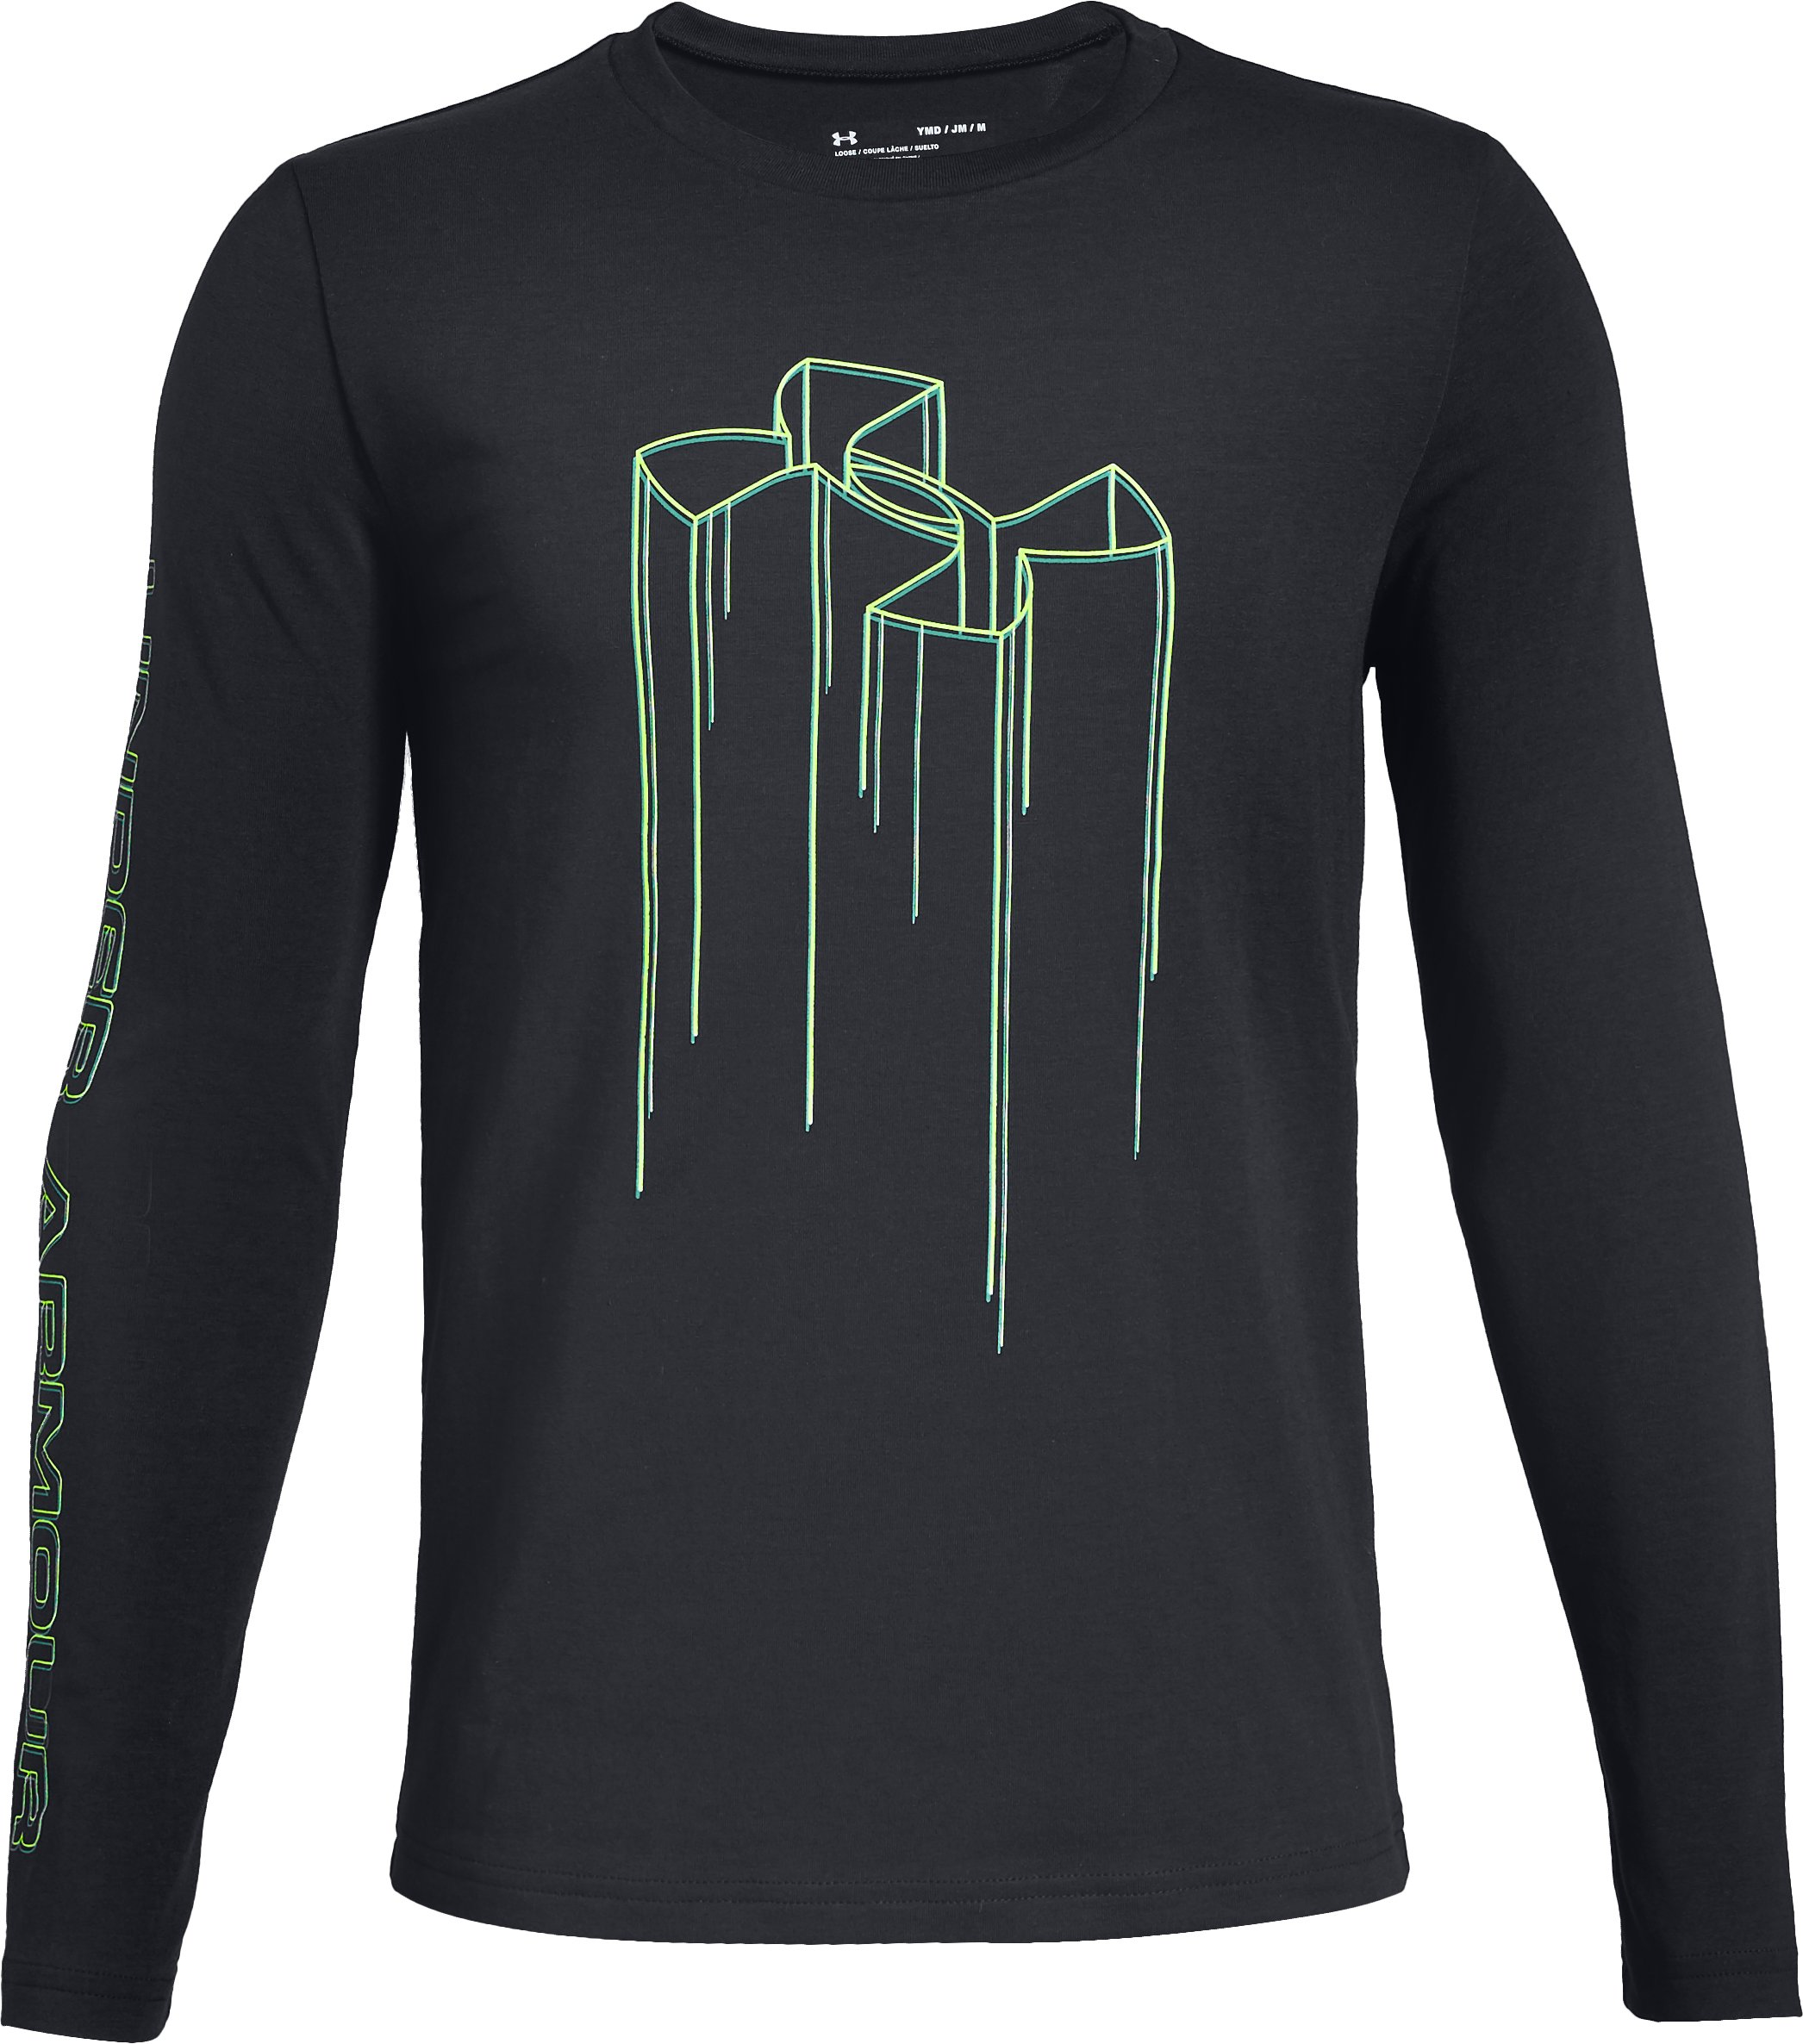 Boys' UA Electro Branded Long Sleeve T-Shirt 3 Colors $25.00